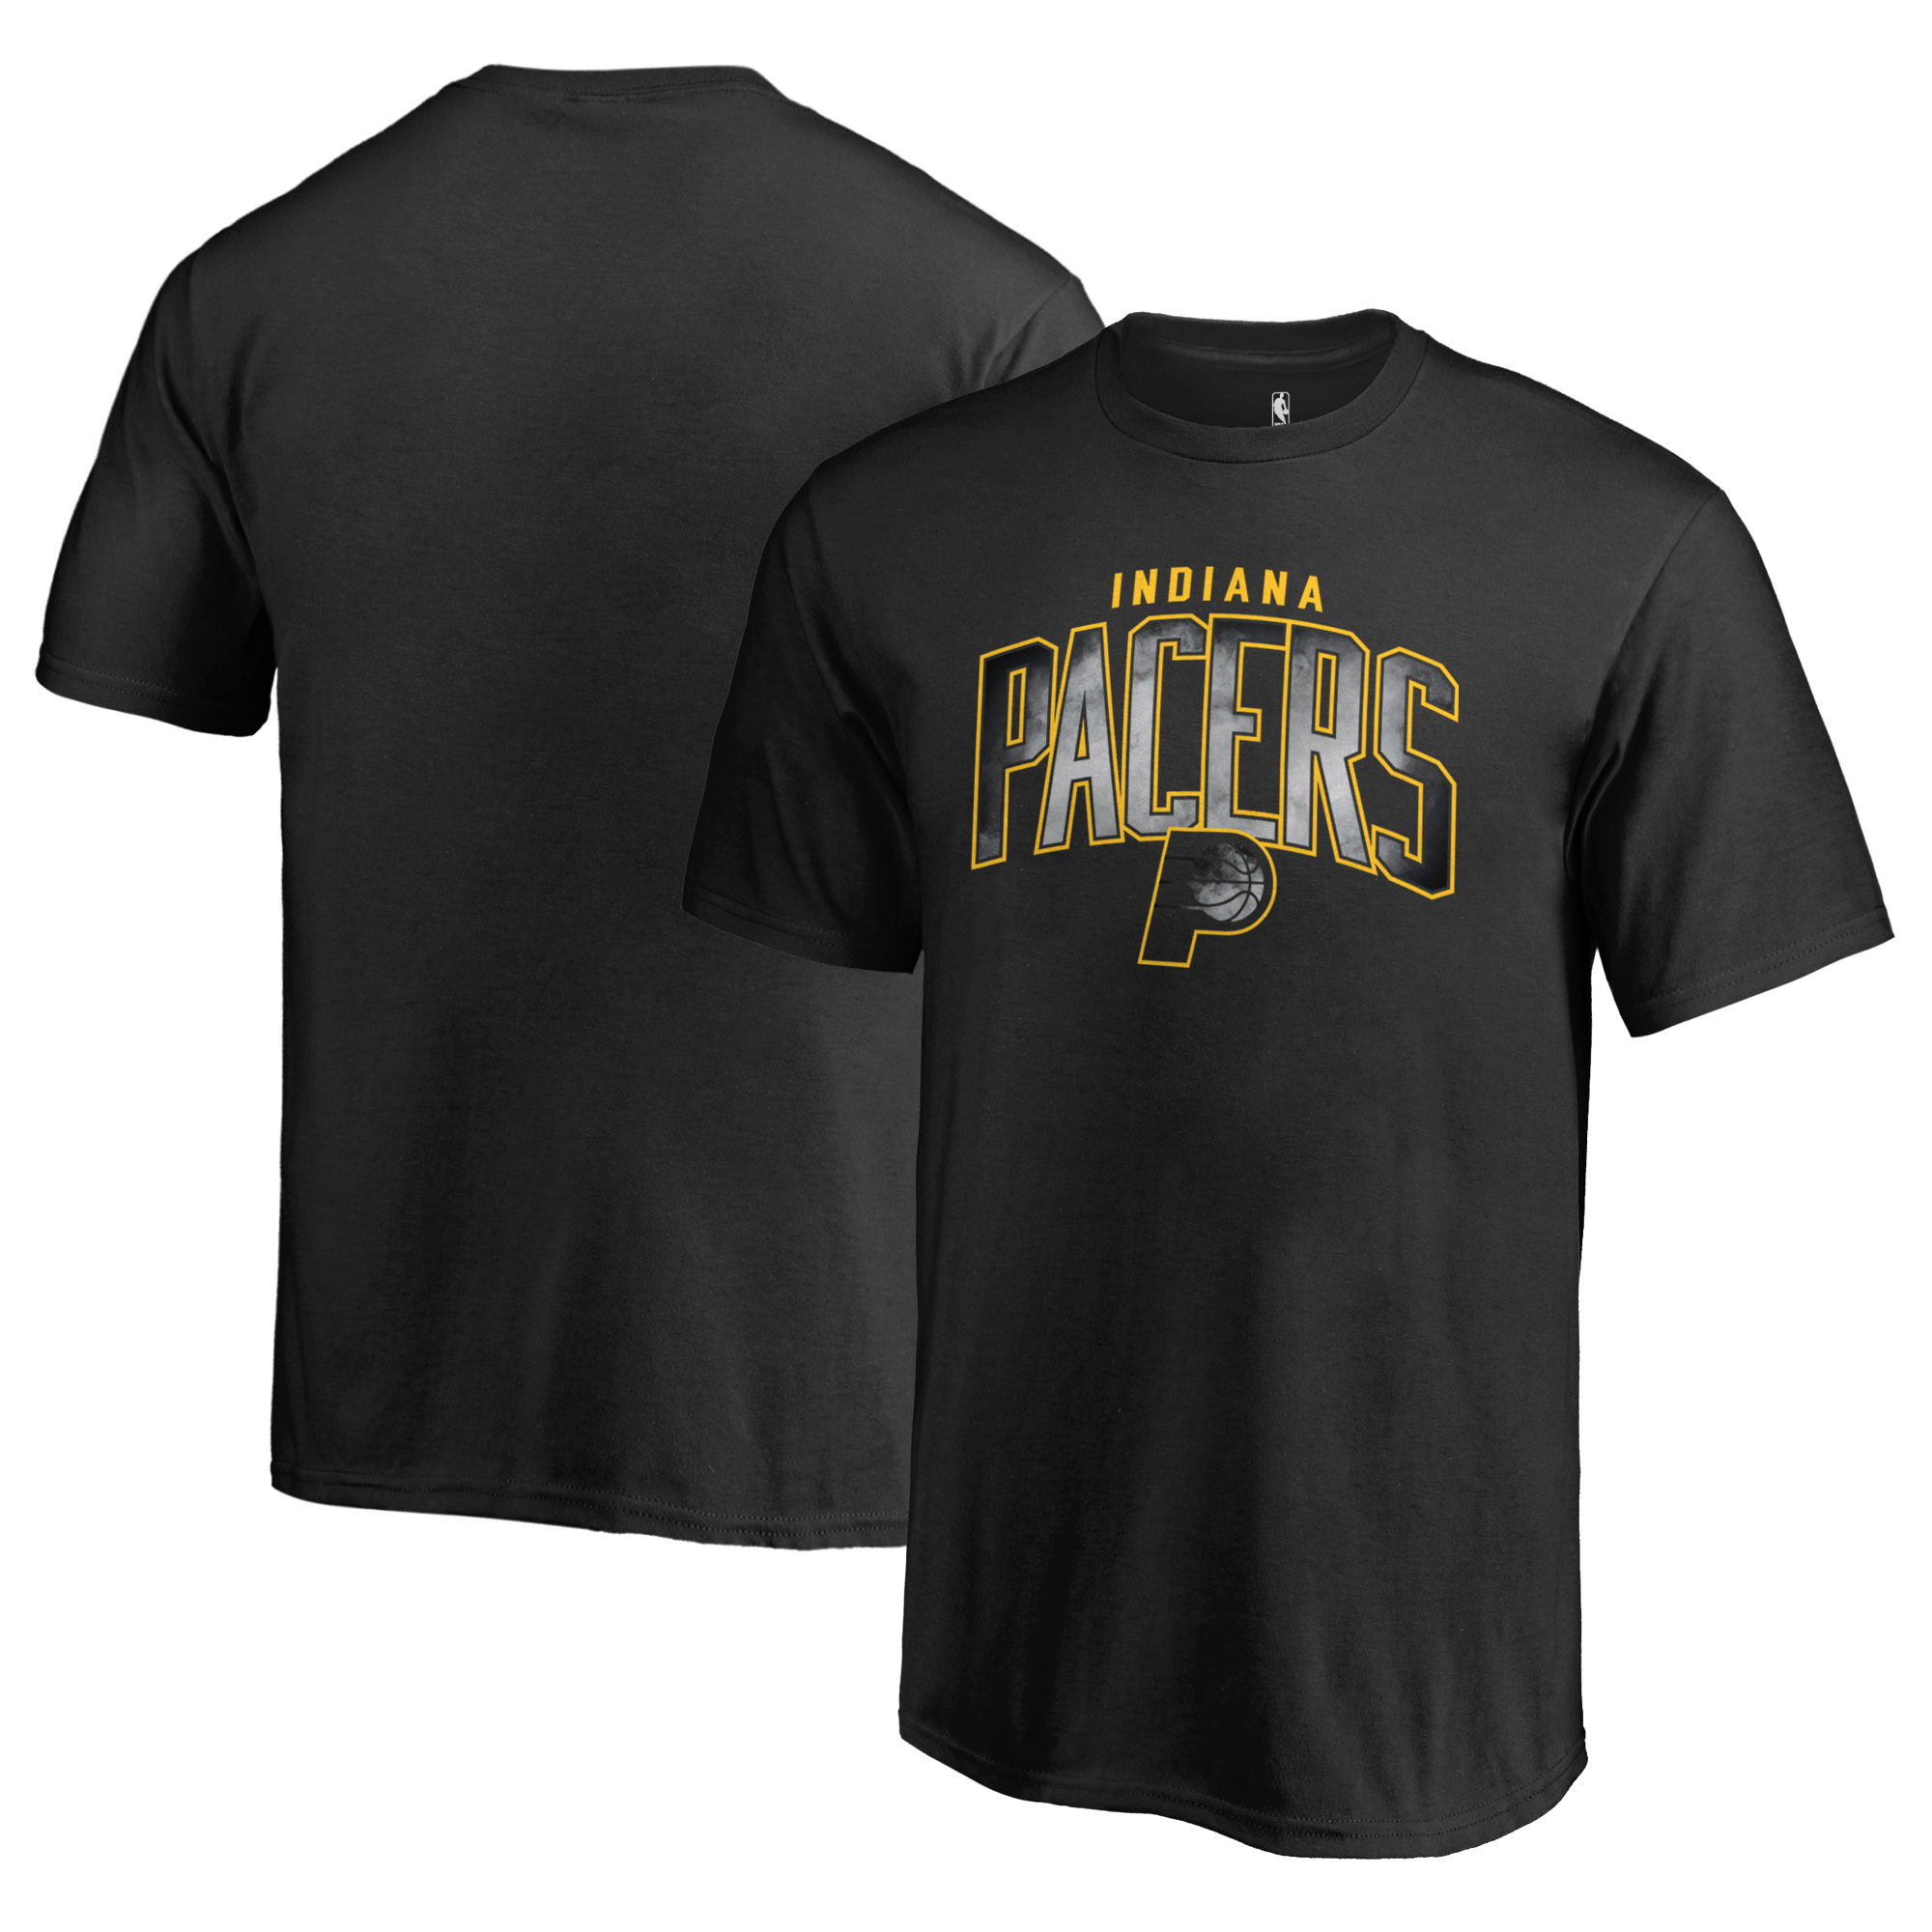 Indiana Pacers Fanatics Branded Youth Arch Smoke T-Shirt - Black